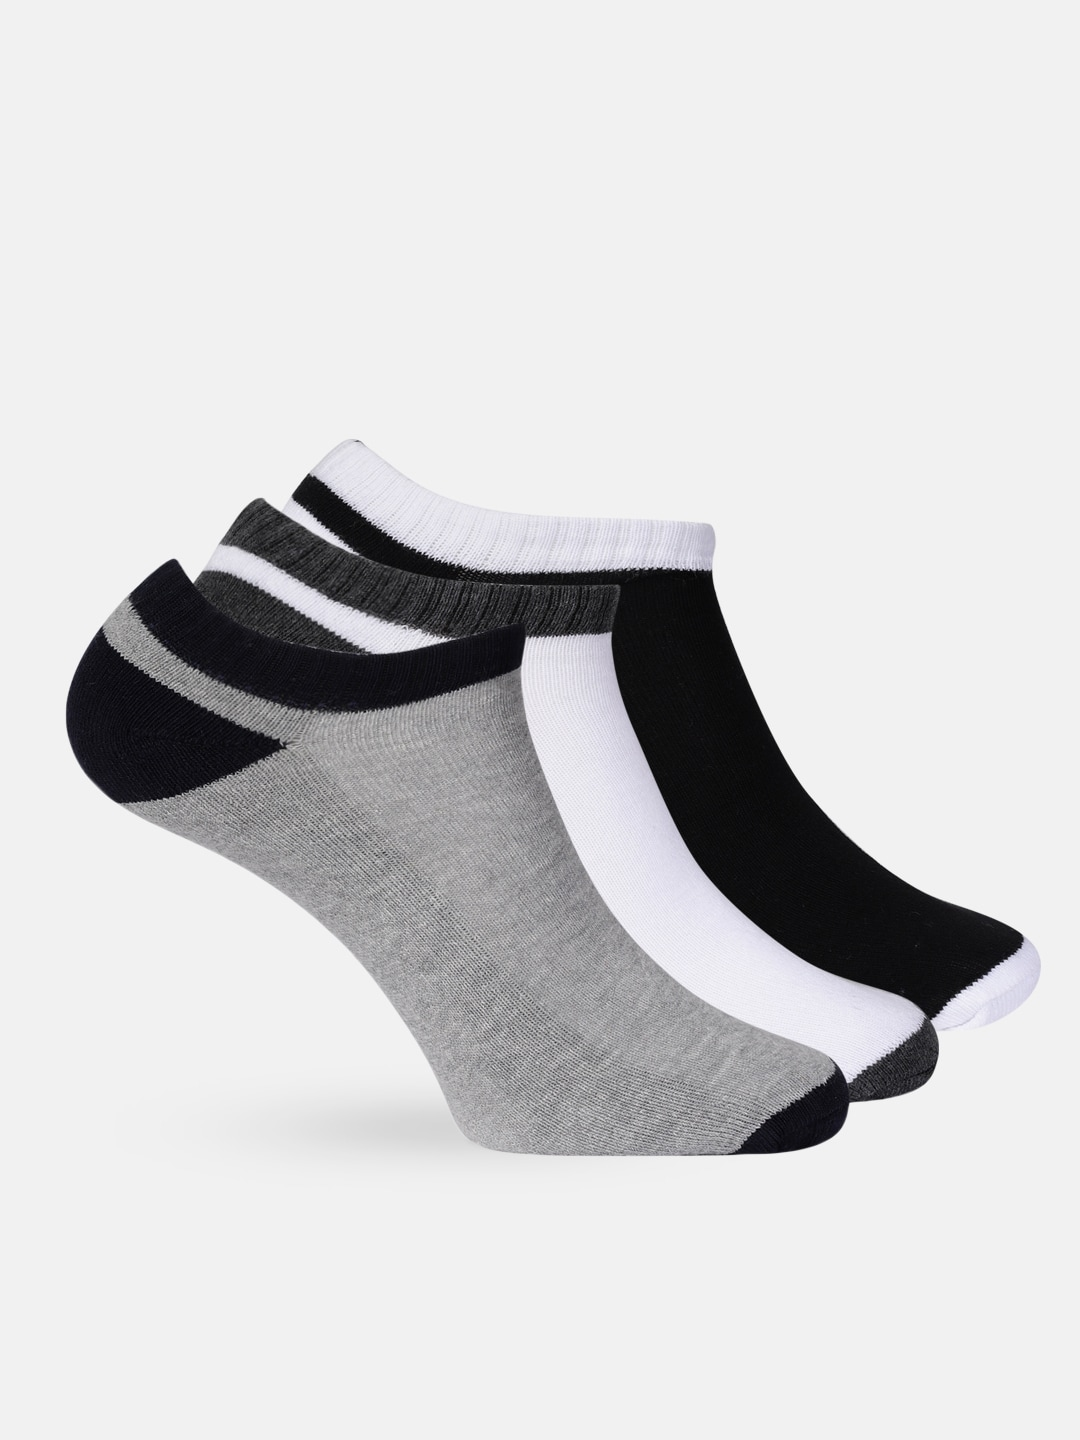 c6ea69d34a3f Socks for Men - Buy Mens Socks Online in India